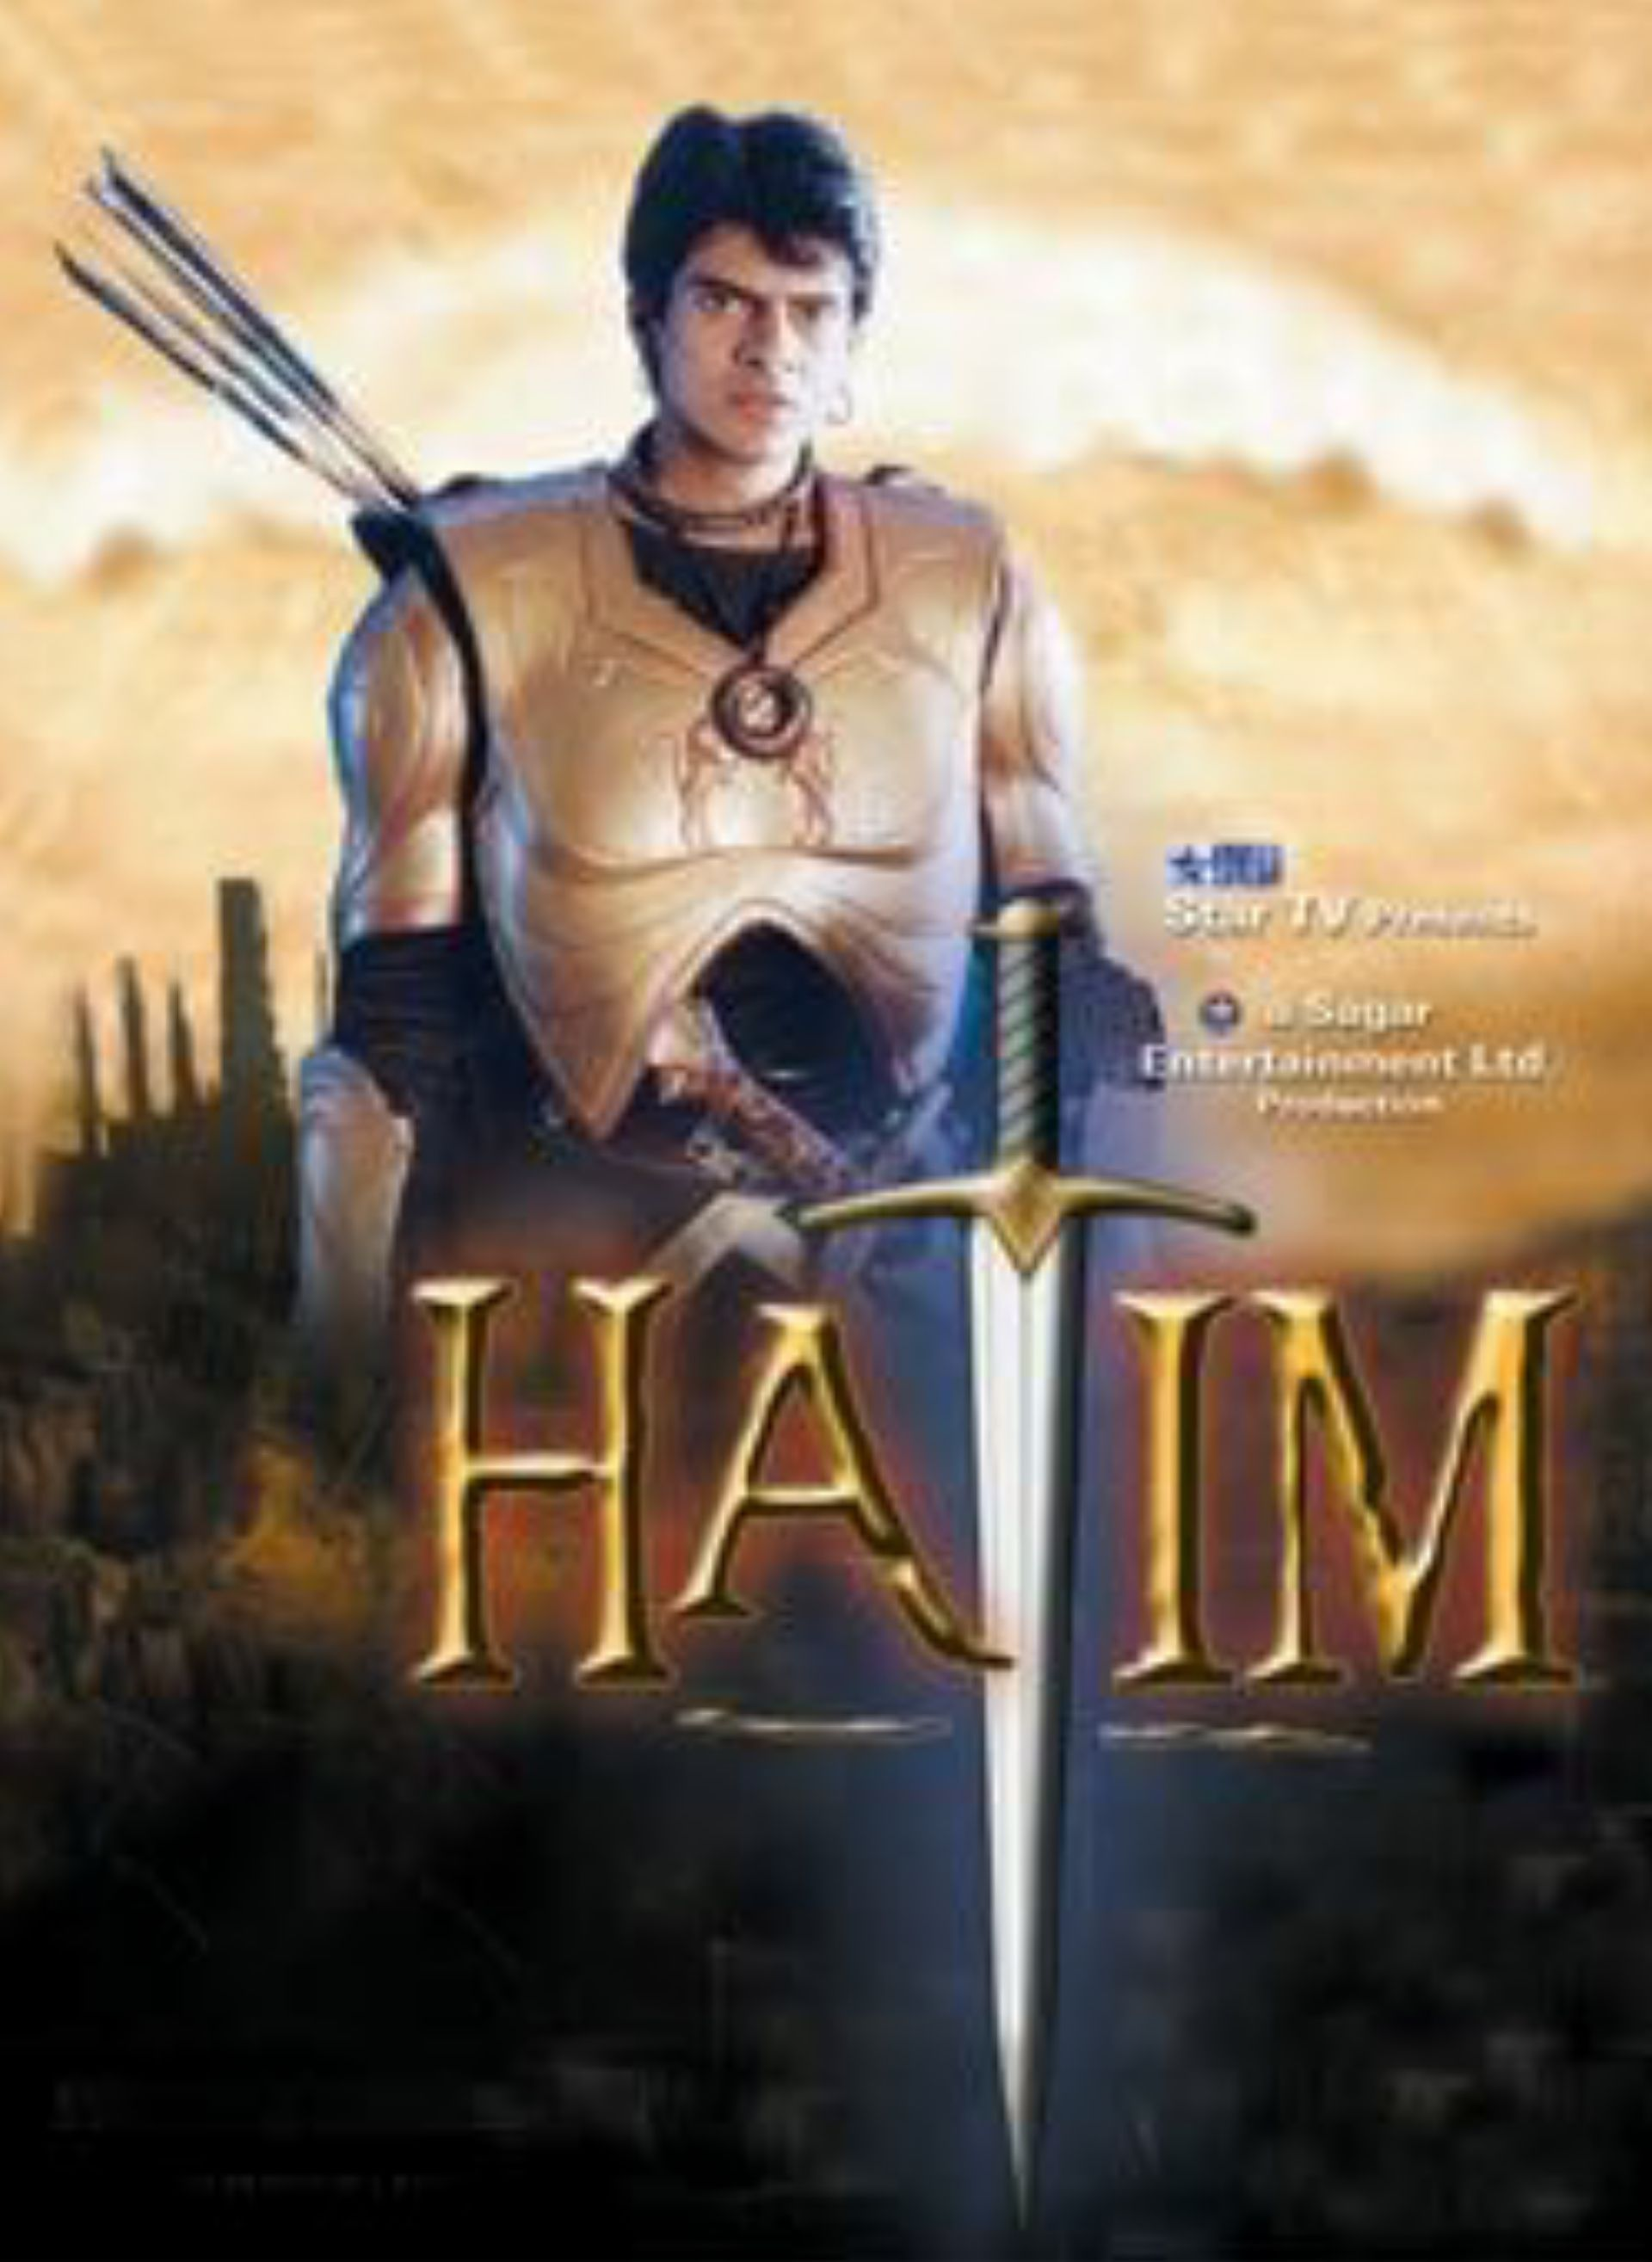 Hatim 2003 Serial all Episodes Free Download 480p HD [90MB